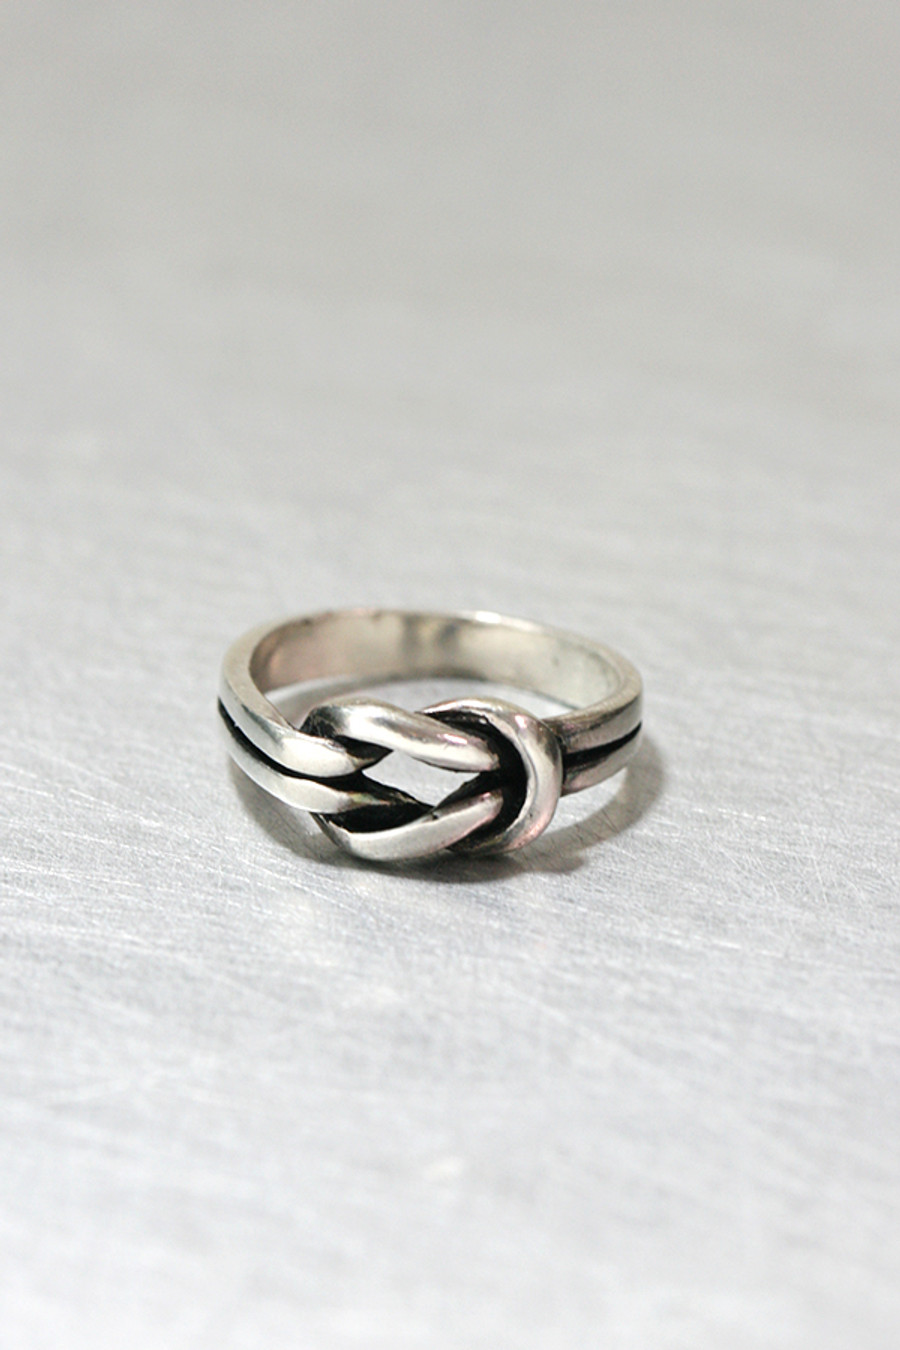 Oxidized Promise Knot Ring Sterling Silver from kellinsilver.com